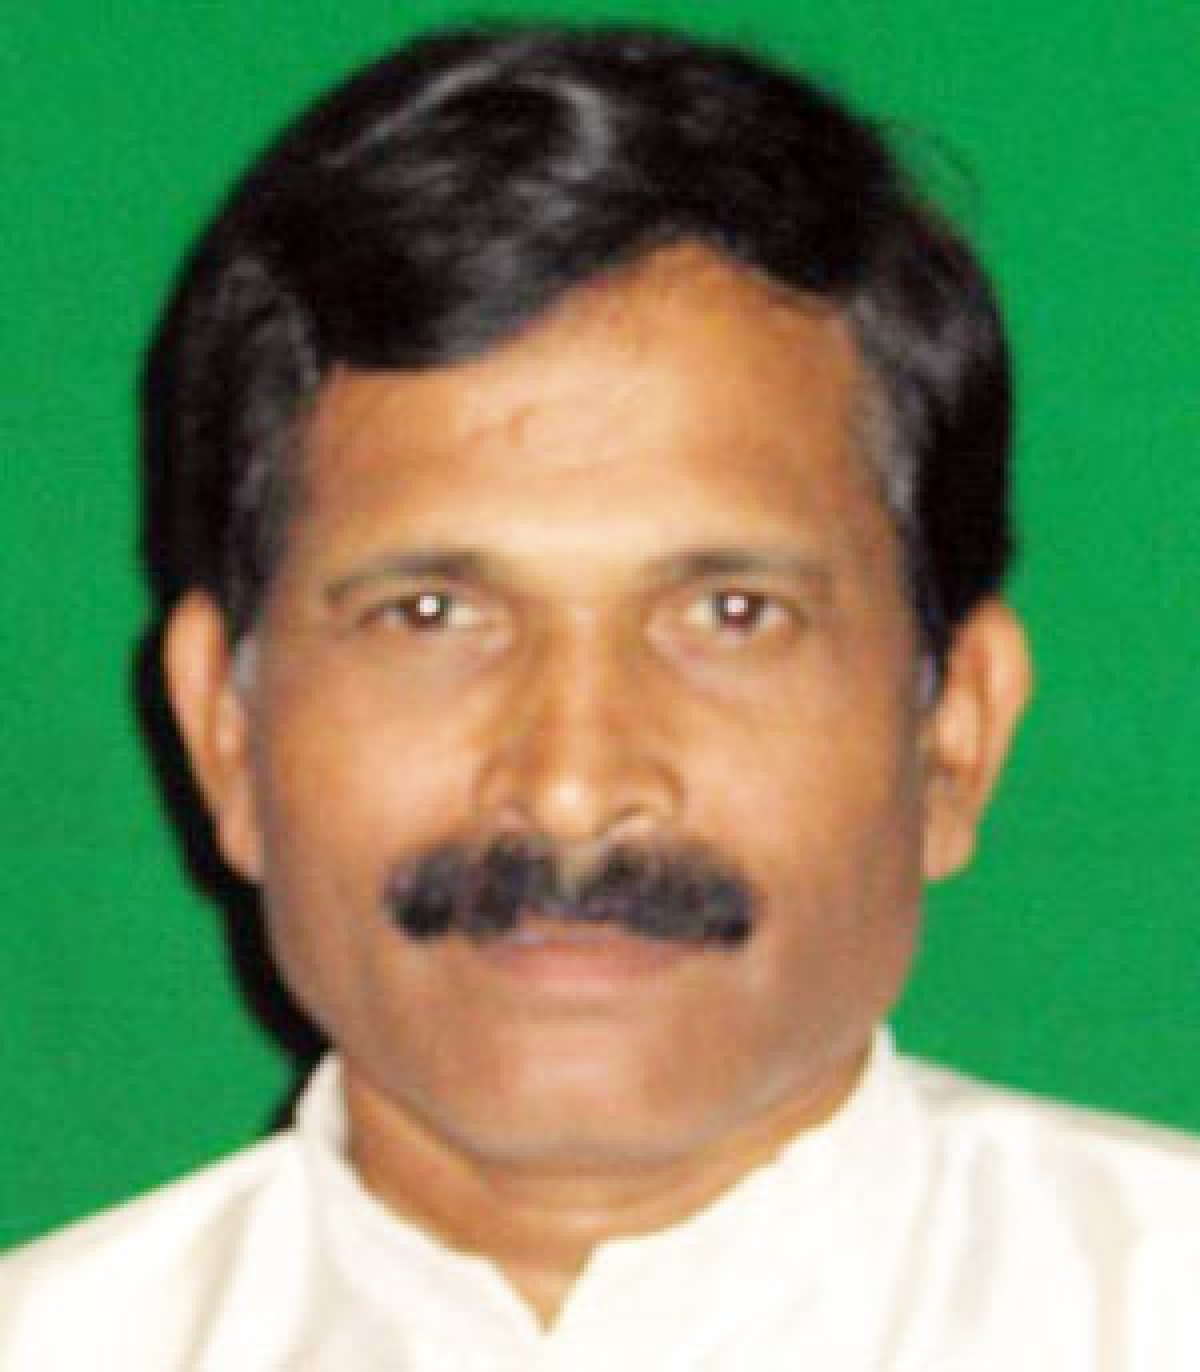 Minister Shripad Yesso Naik wants cultural bliss of yoga back in India